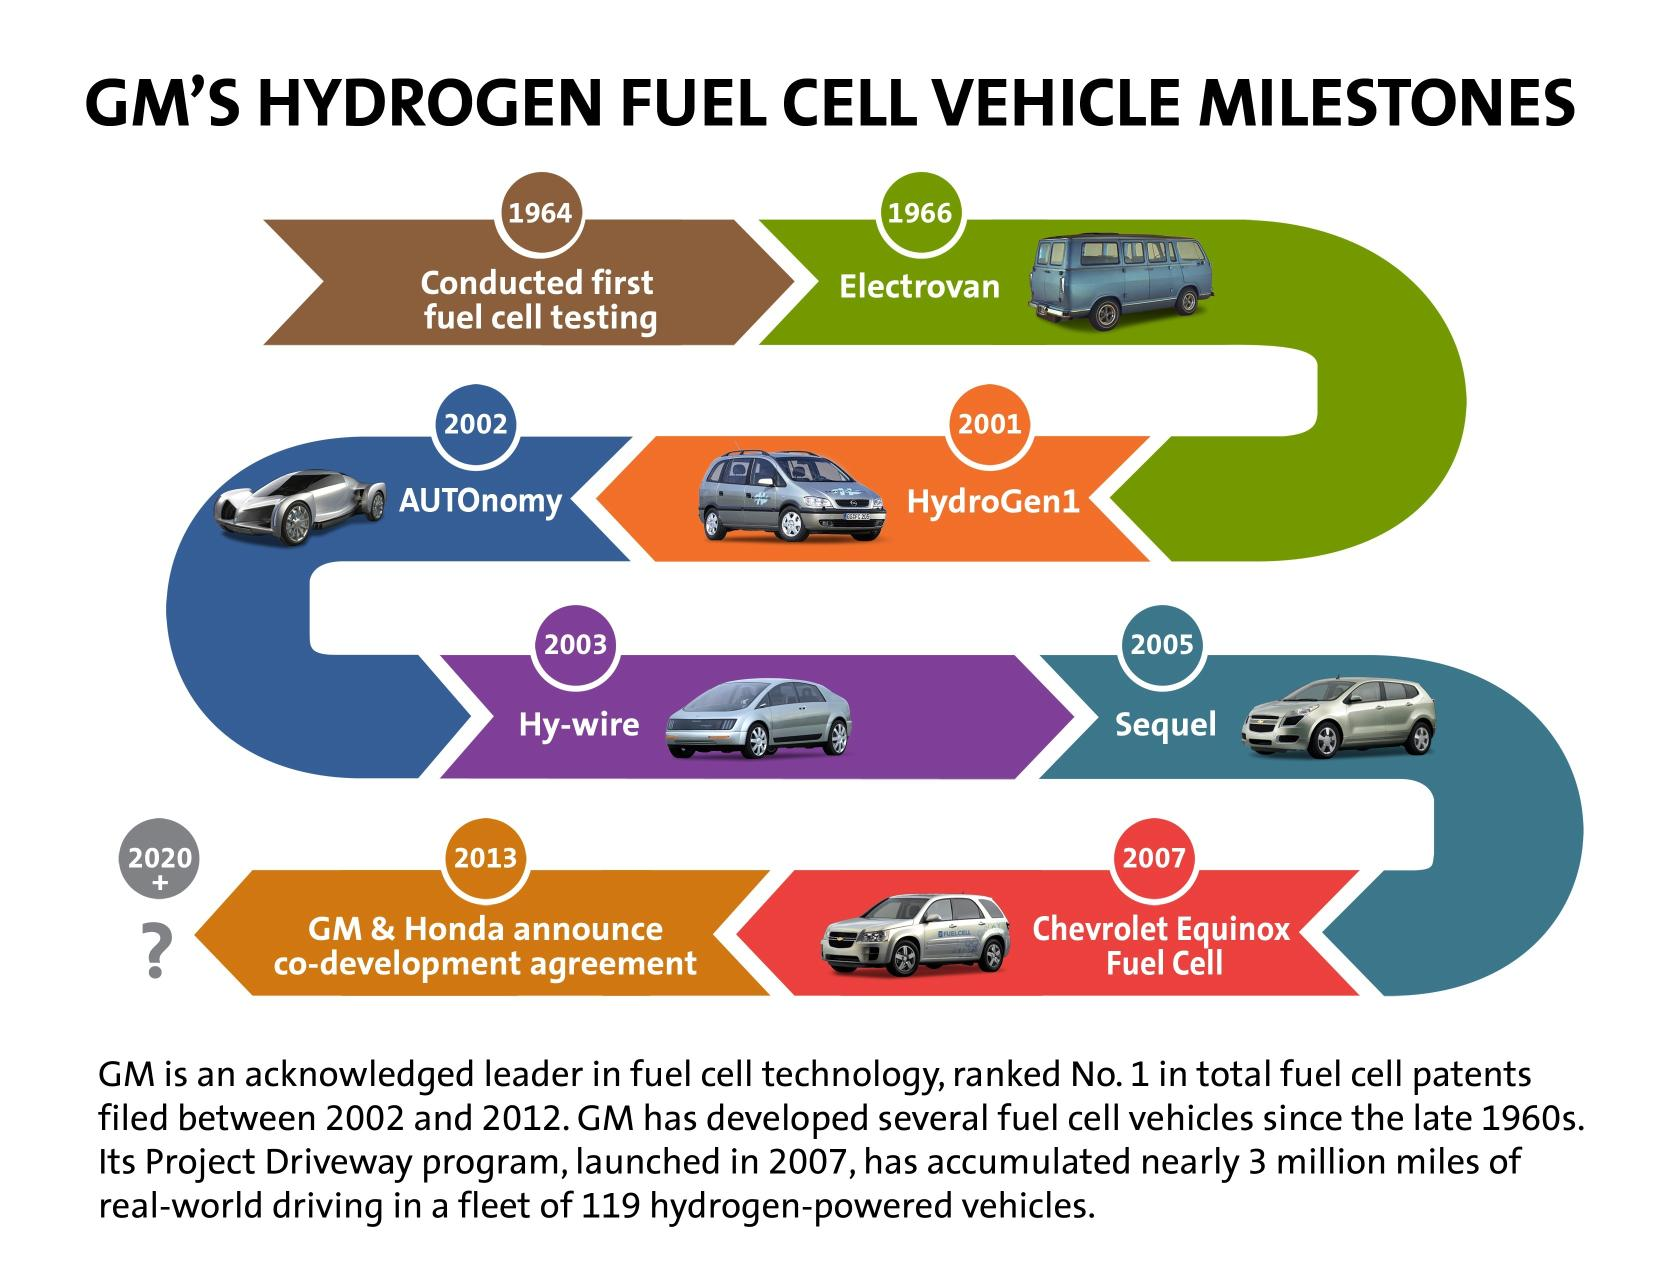 Gm And Honda The Latest To Partner On Fuel Cell Development